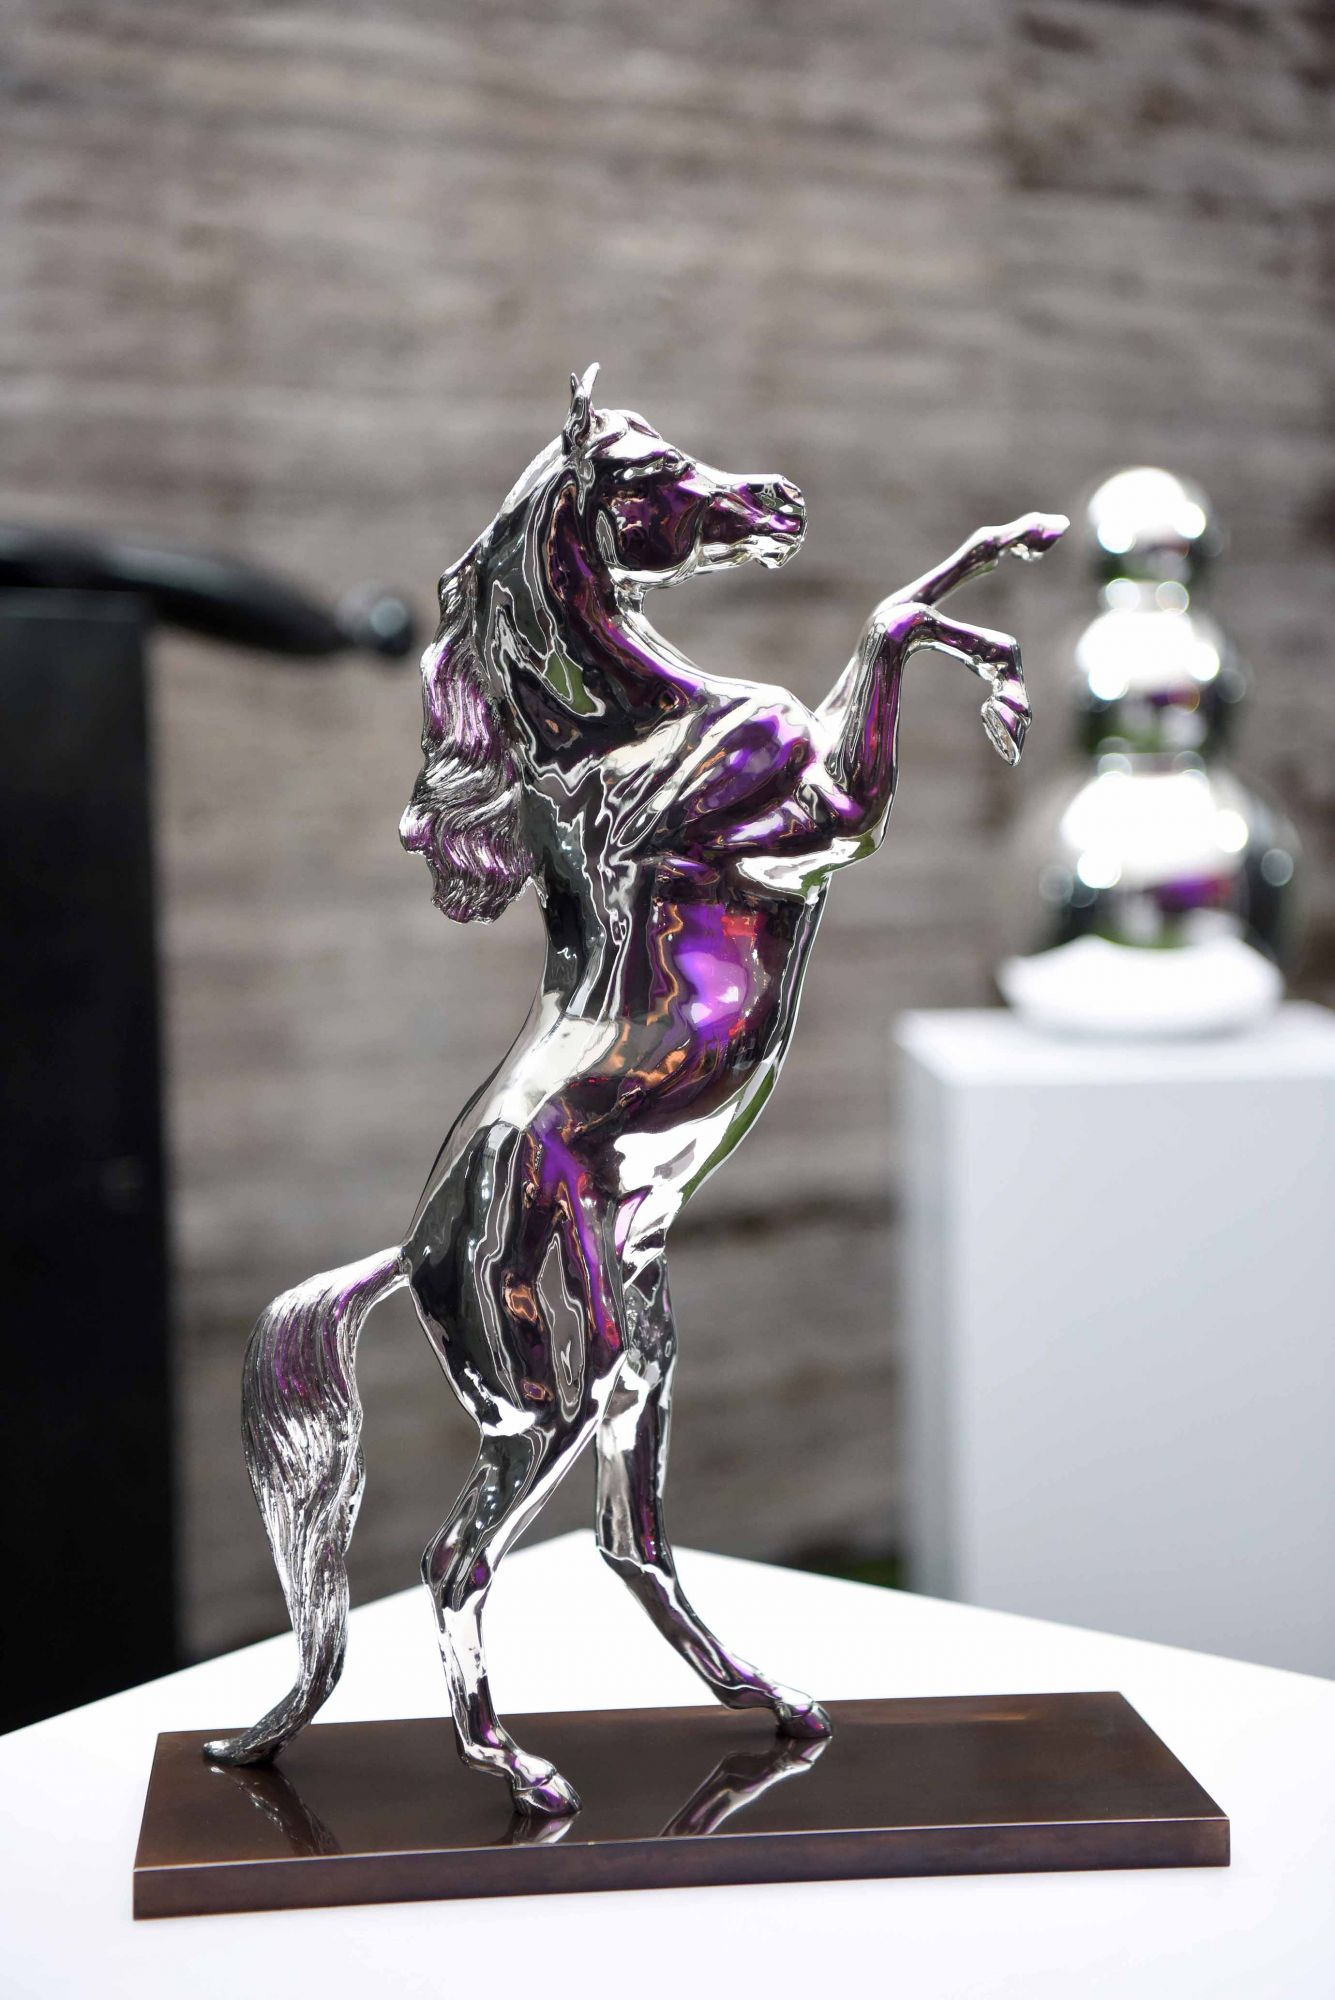 Christofle Sterling Silver Rearing Arabian Horse by Allison Hawkes